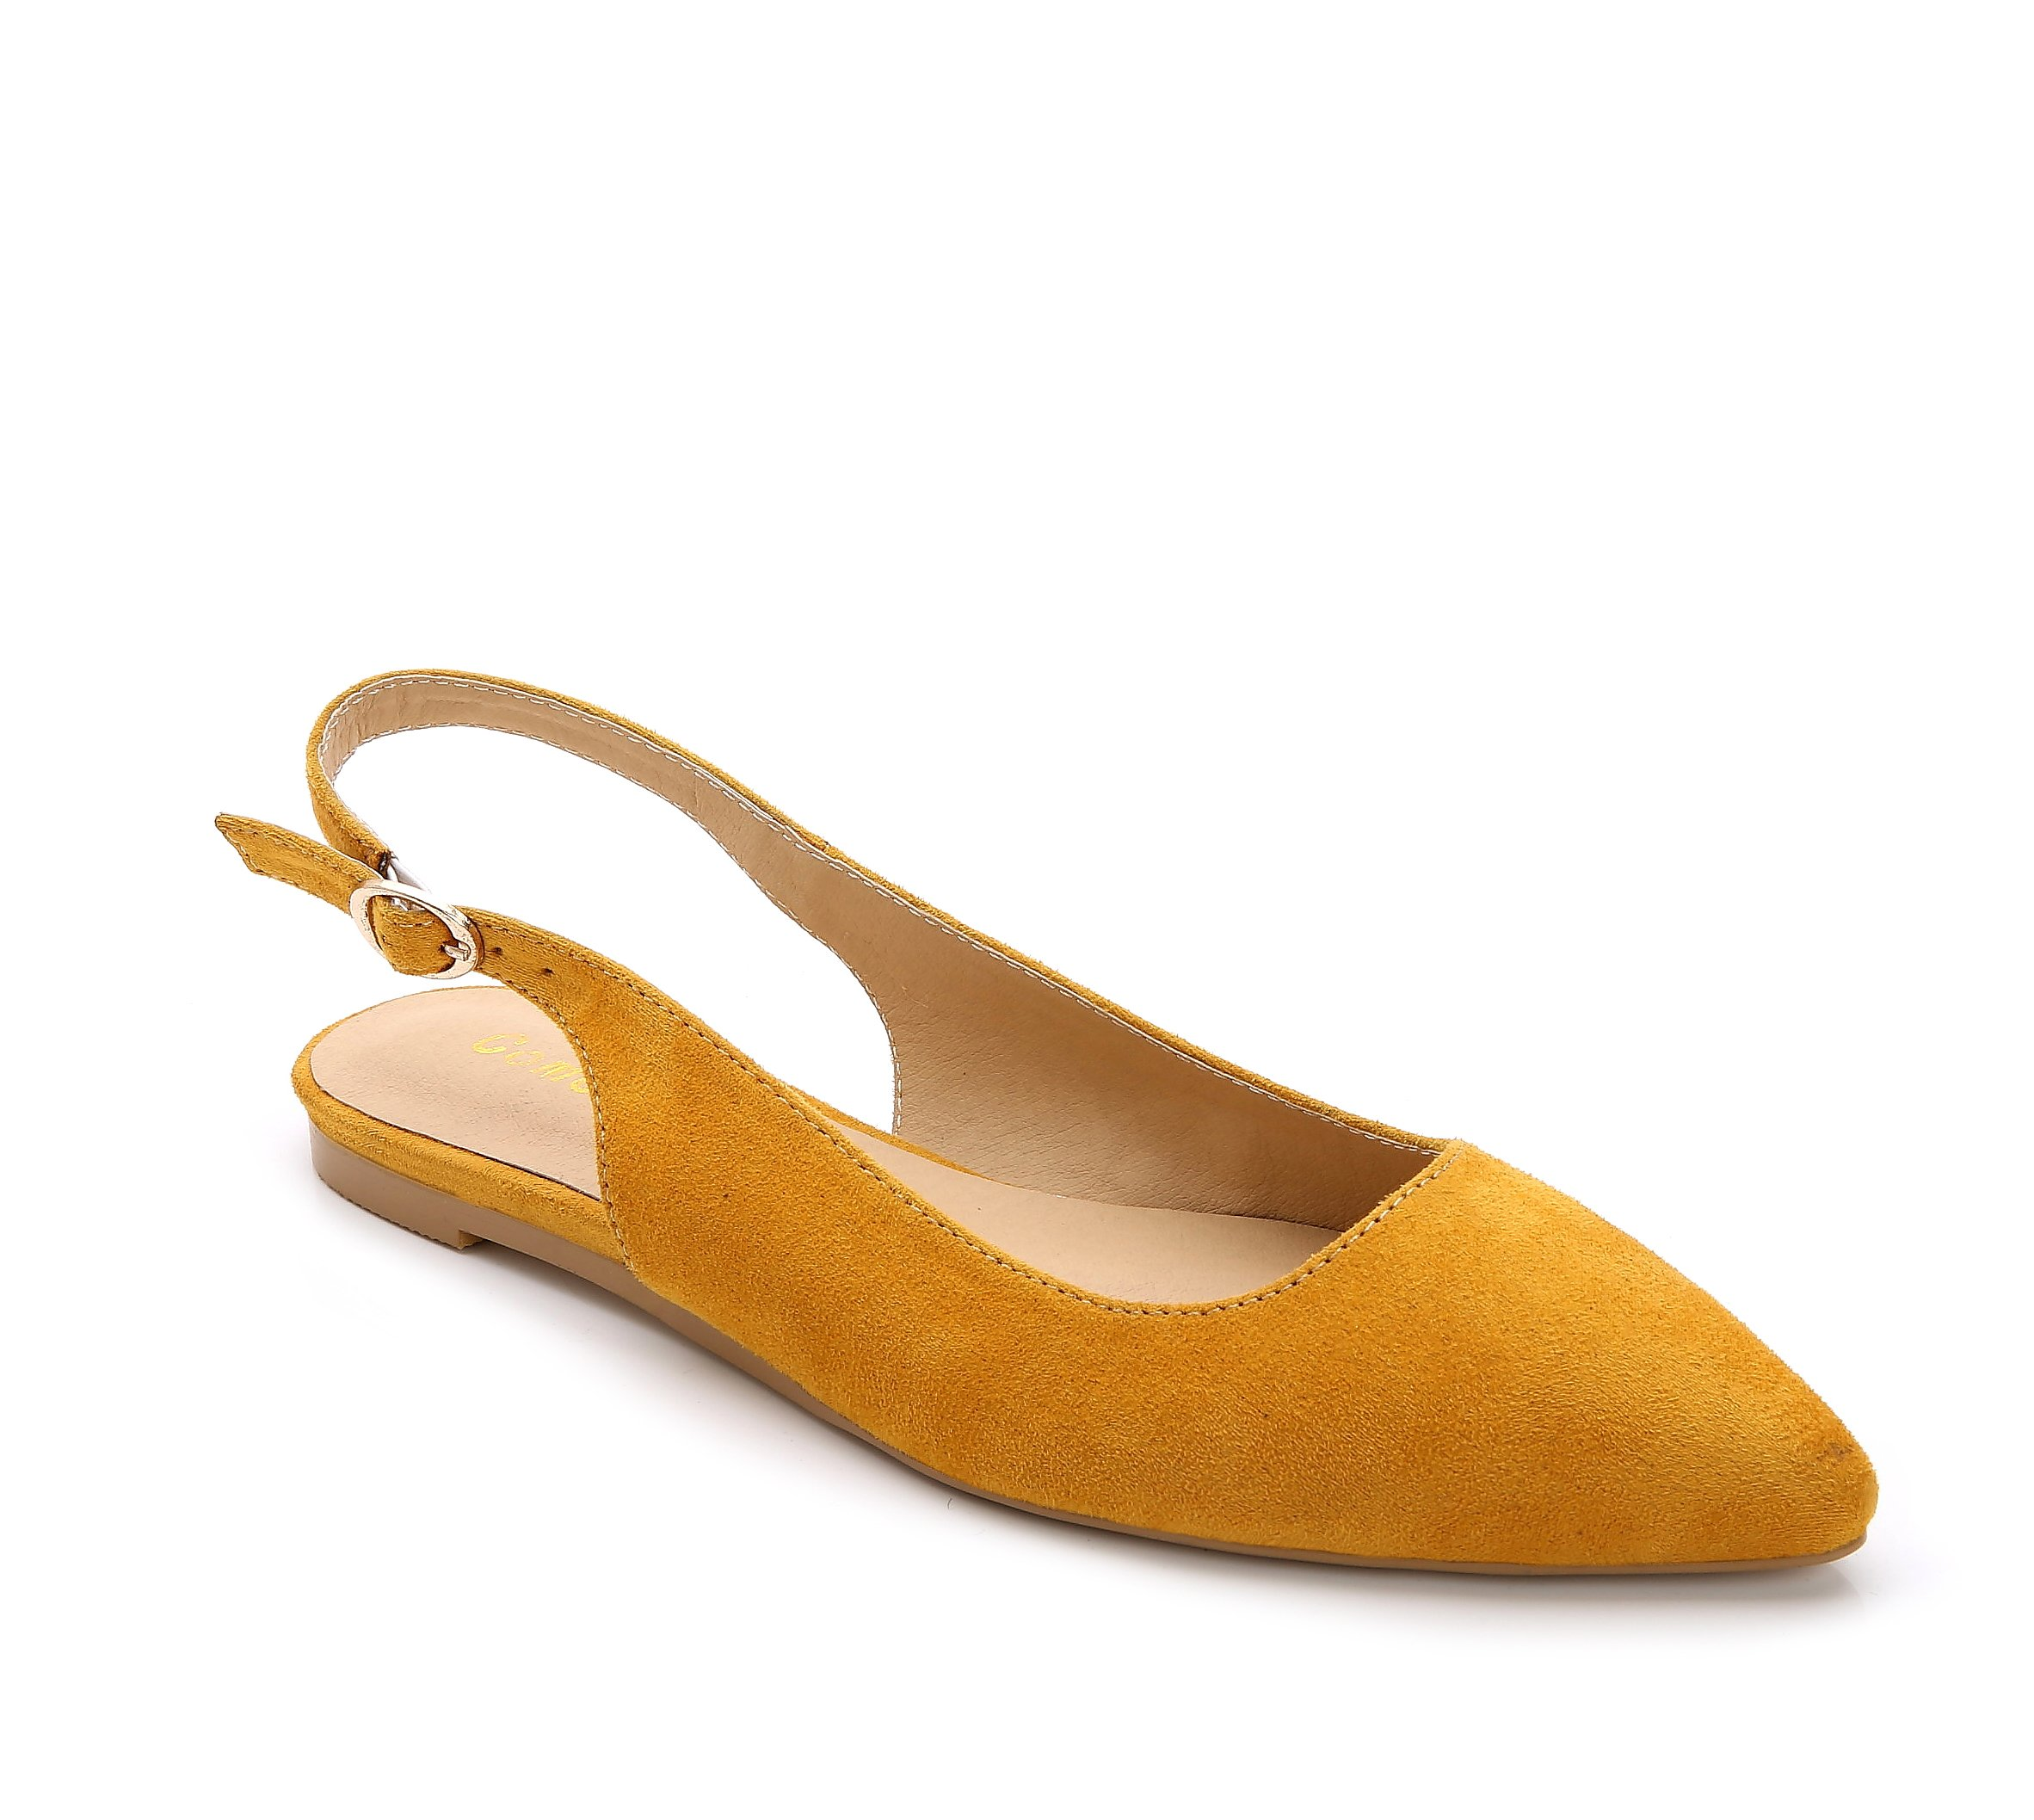 7eb7828cce6 Get Quotations · ComeShun Womens Shoes Faux Suede Closed Toe Flats Slingback  Dress Pumps